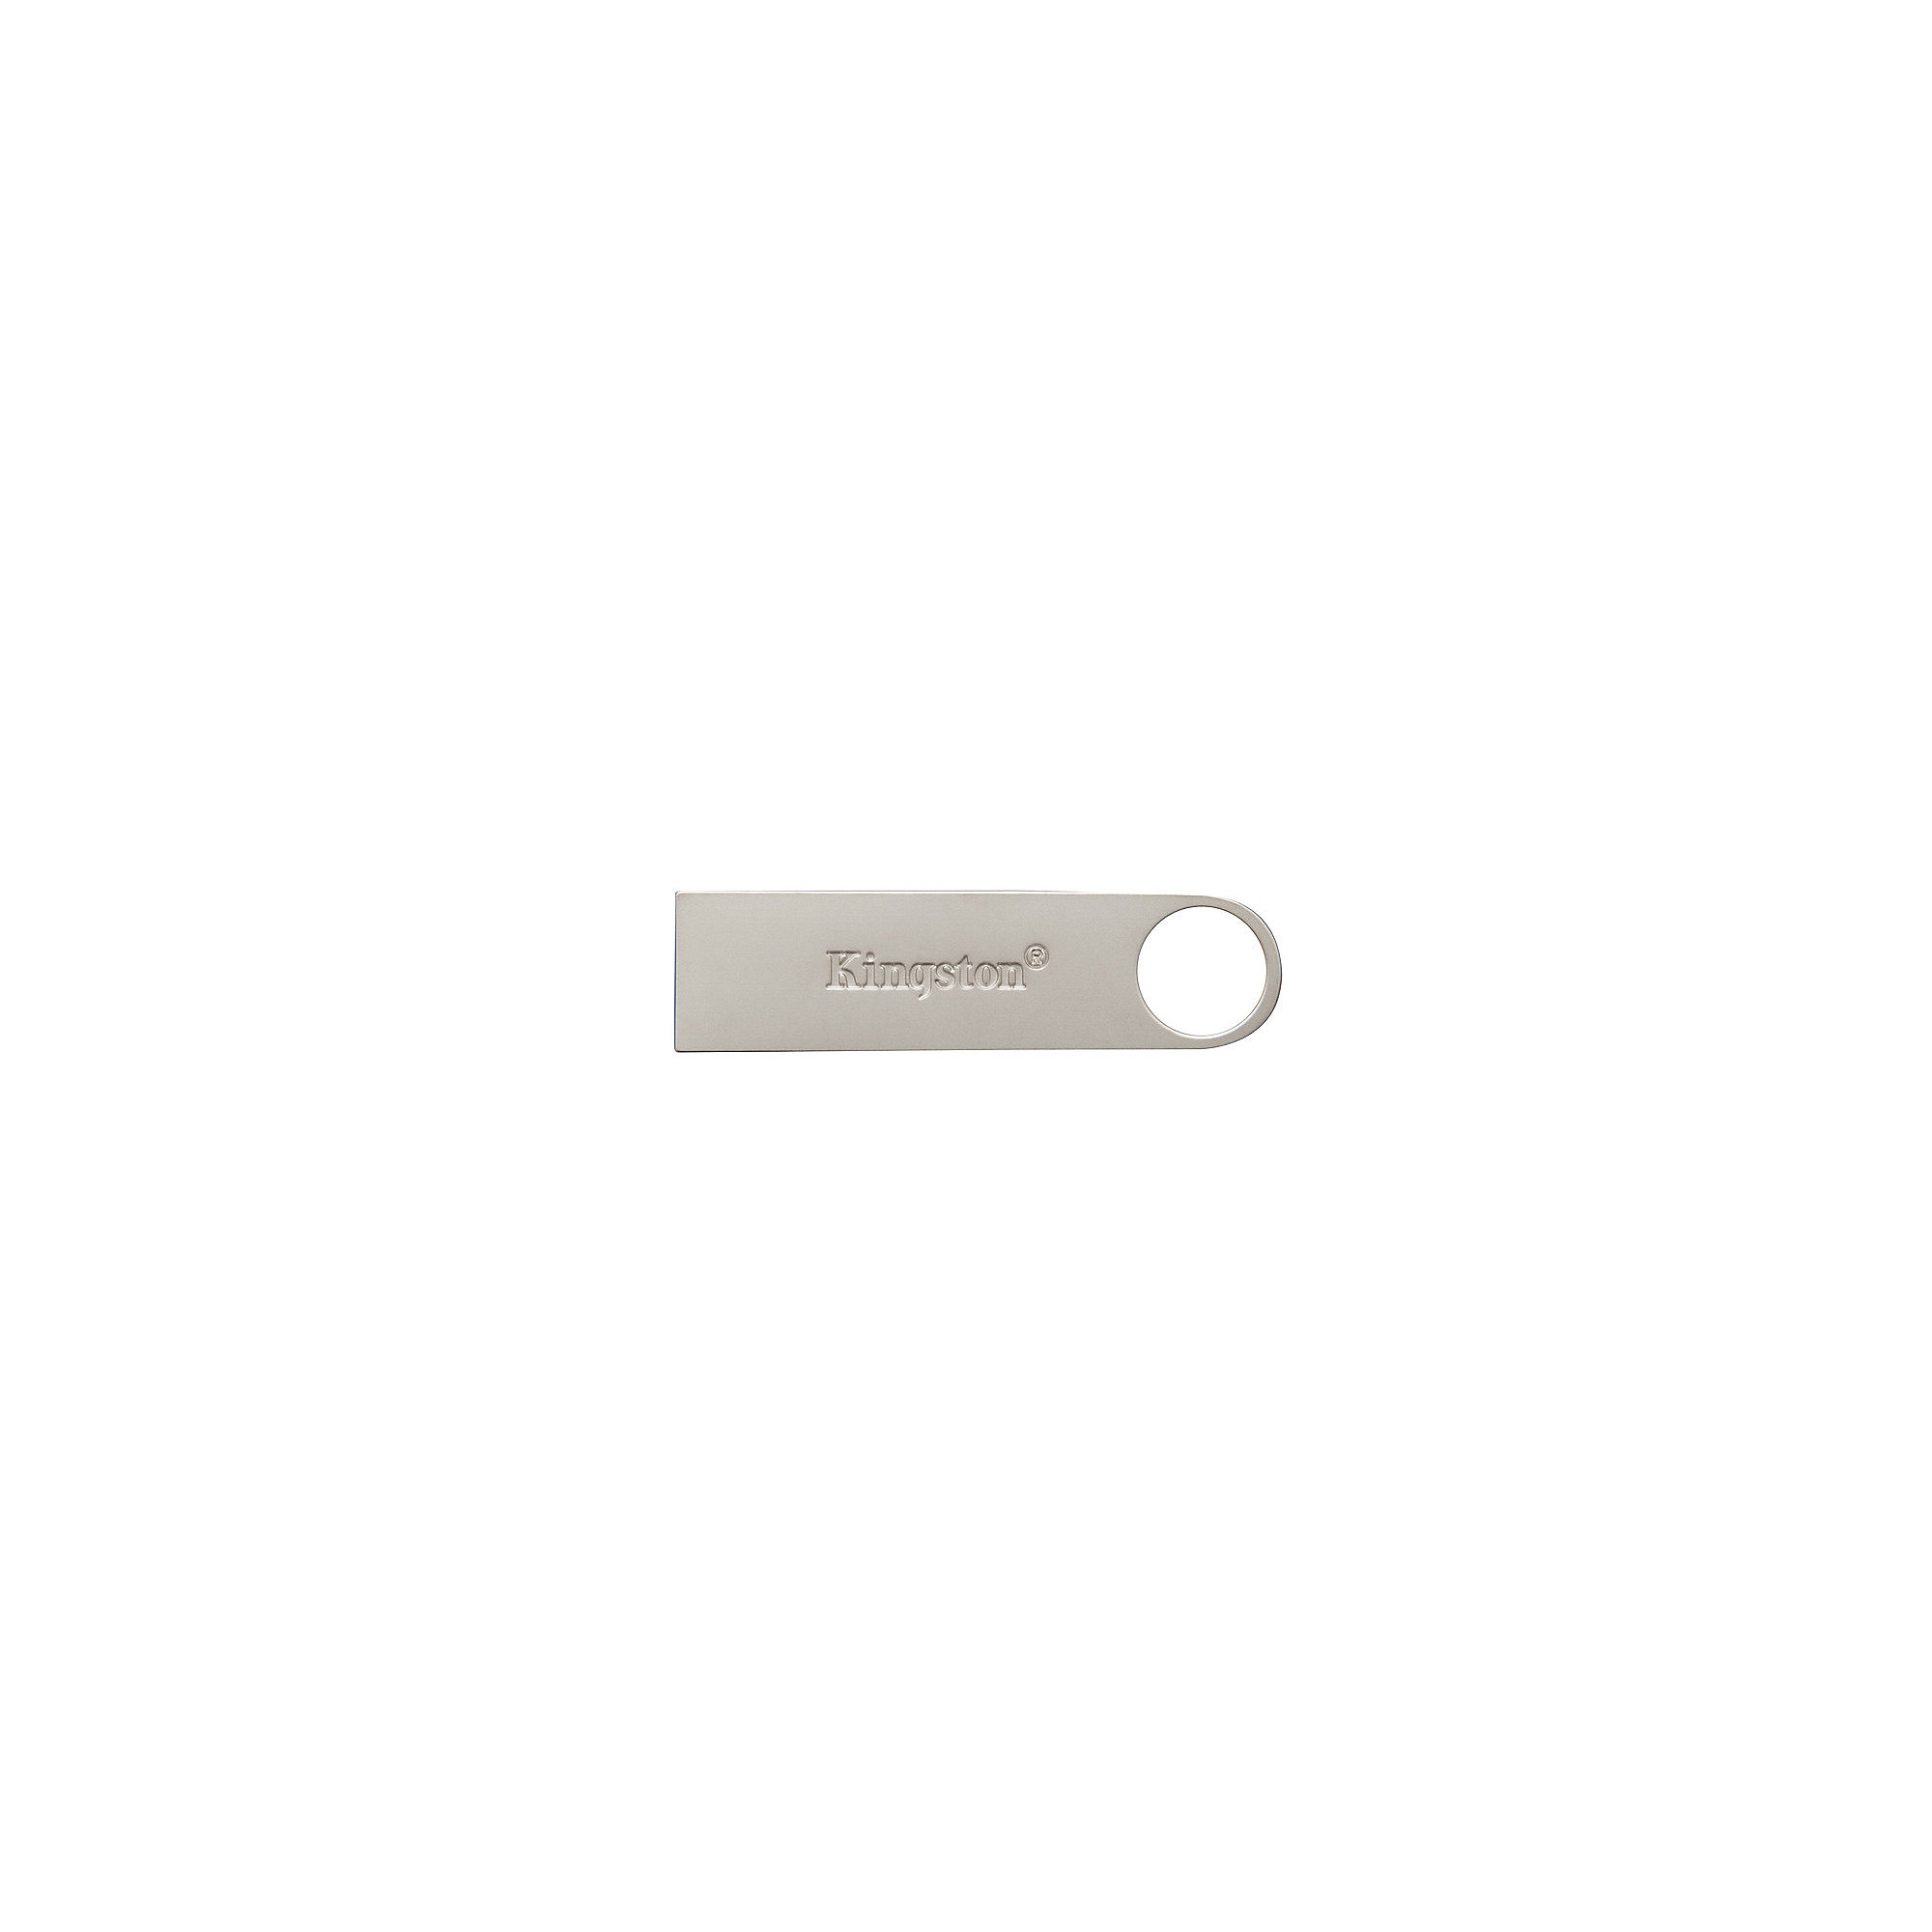 Kingston 16GB DataTraveler SE9 G2 USB 3.0 Stick